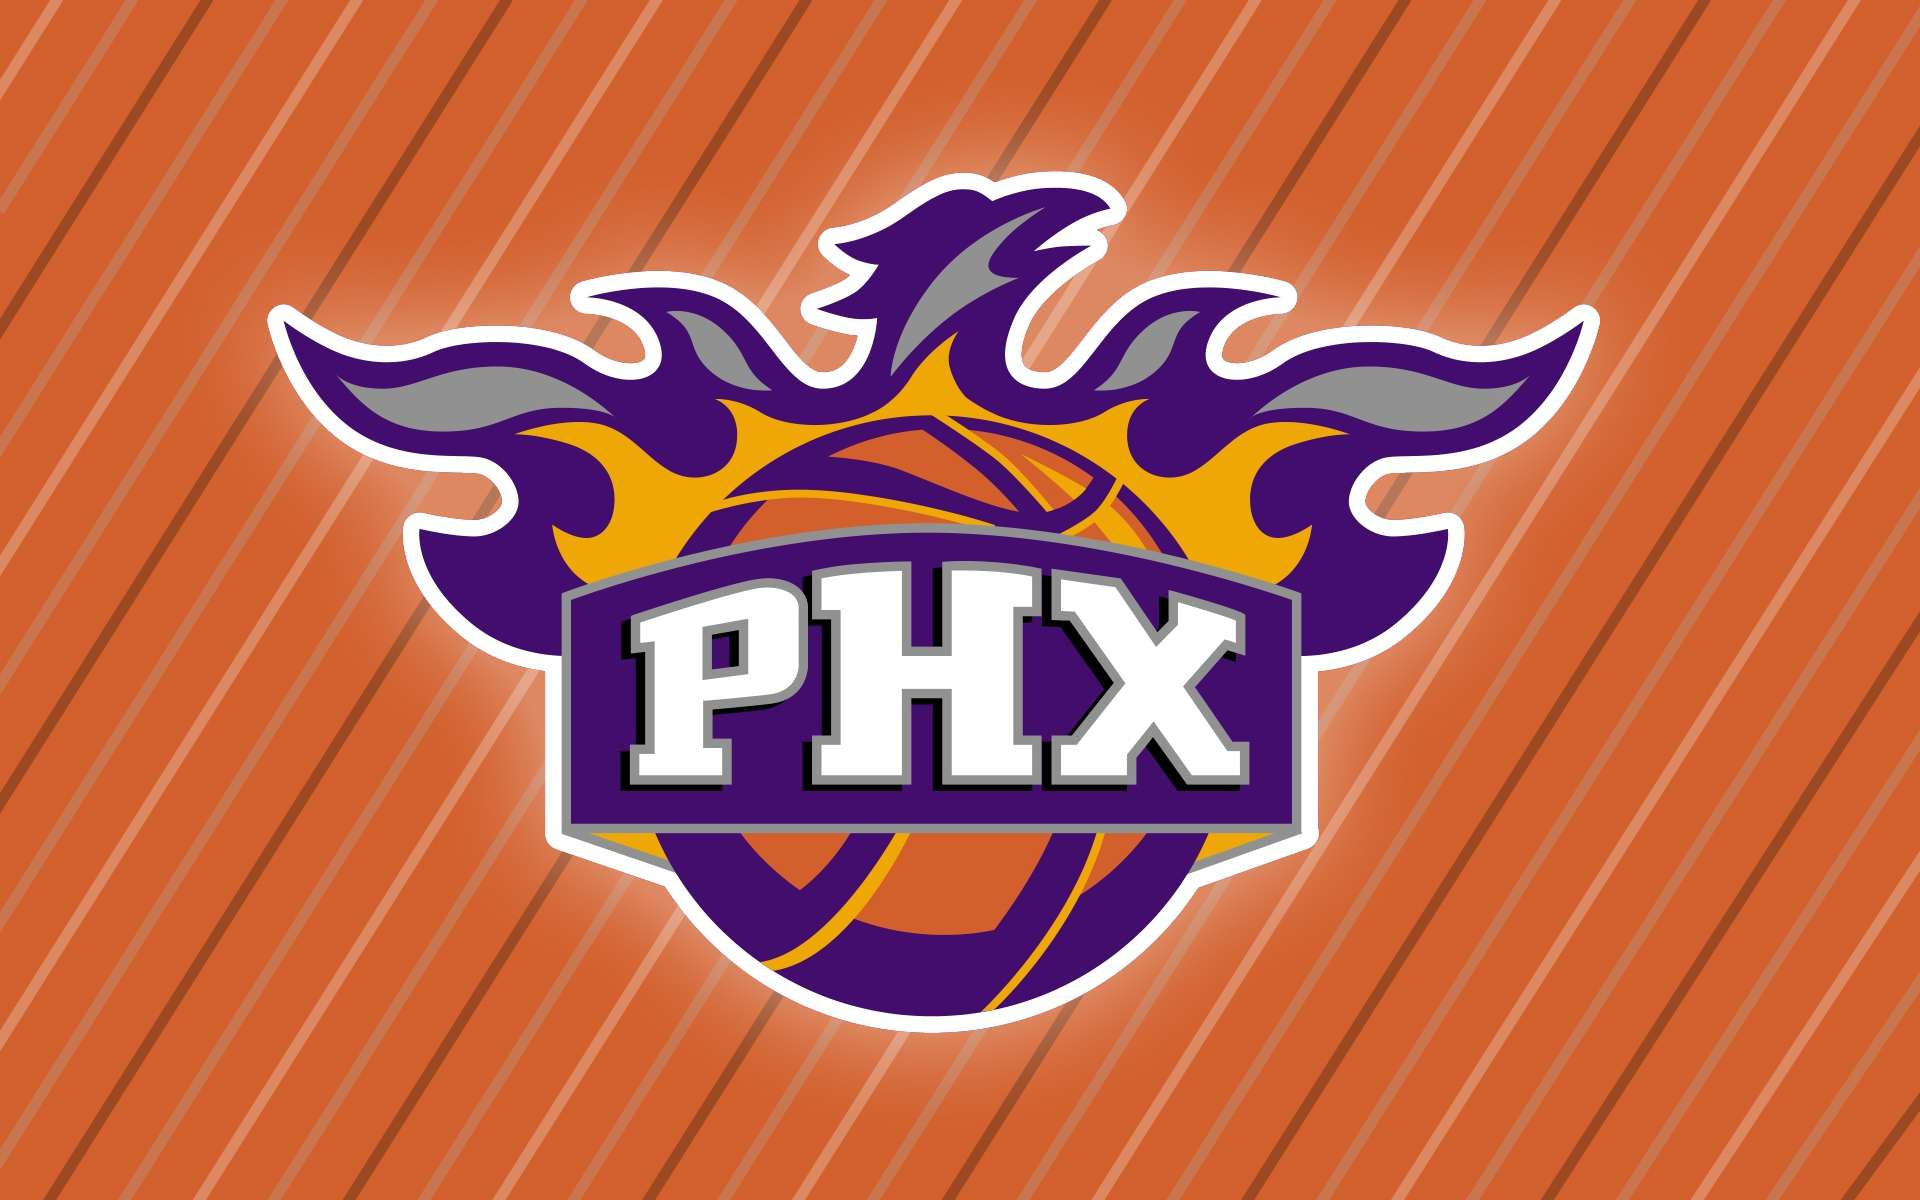 Phoenix Sports Team Logos and Their Meanings